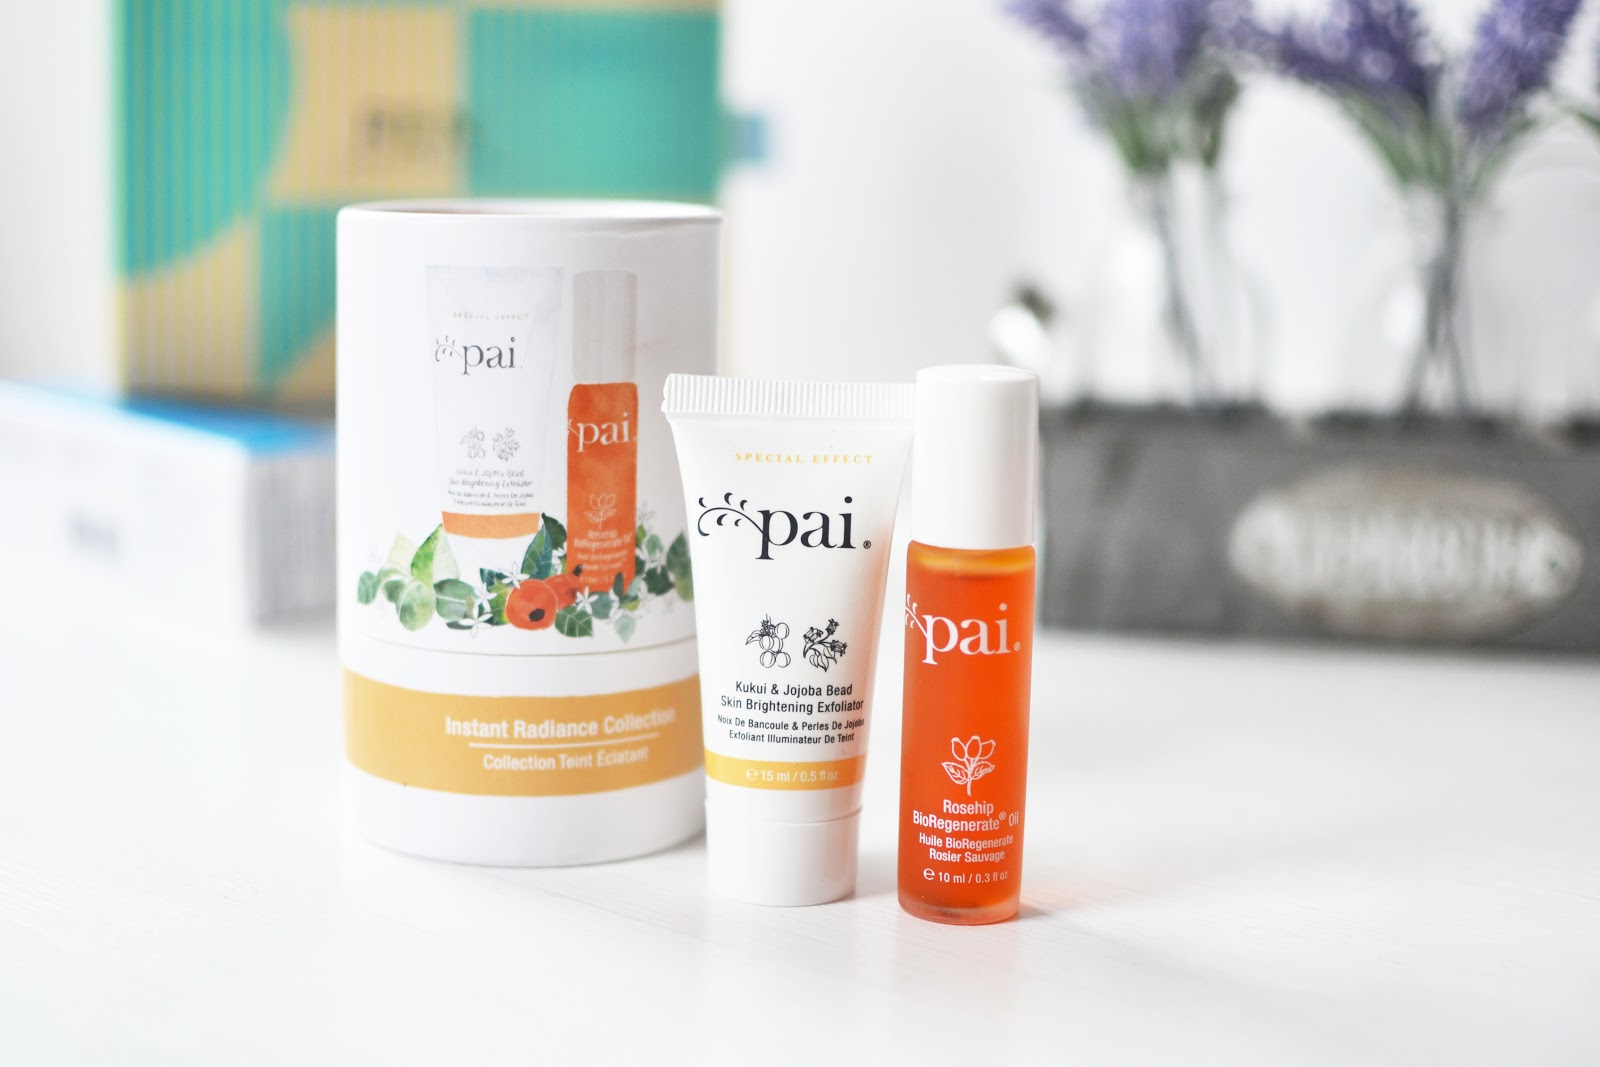 Pai Skincare Instant Radiance Collection